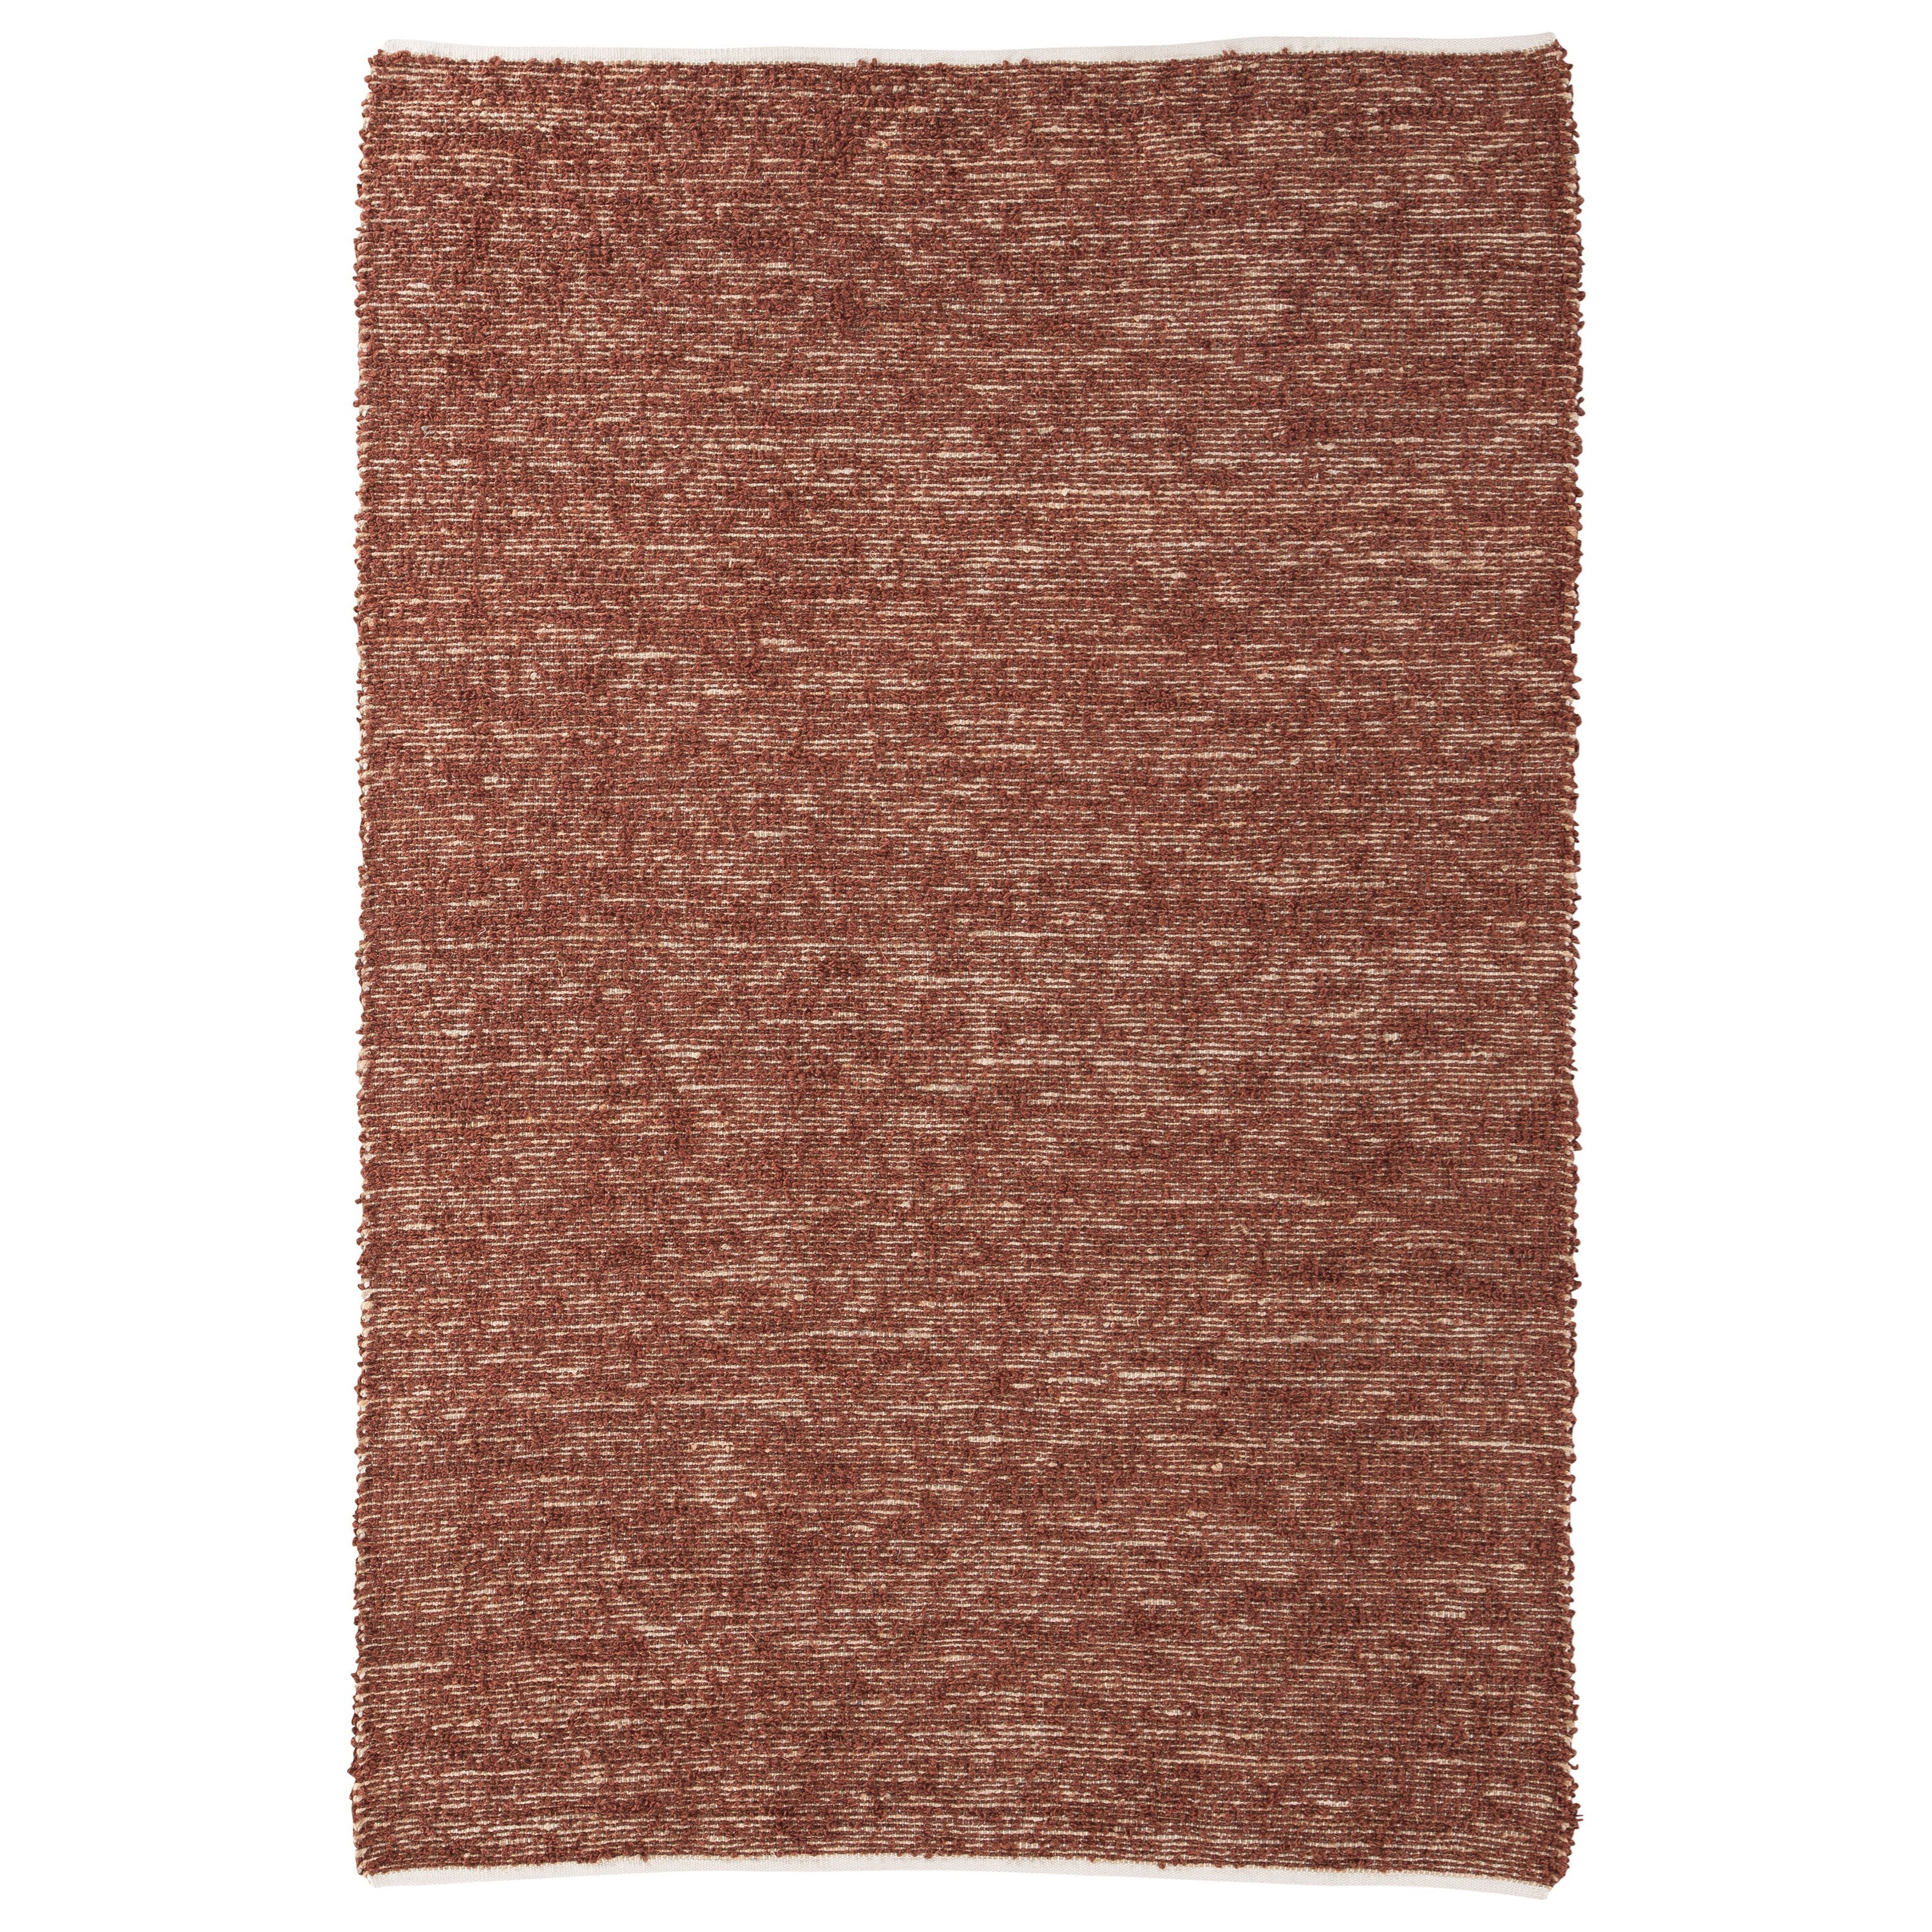 Signature Design by Ashley Casual Area Rugs Taiki Brown Medium Rug - Item Number: R400902